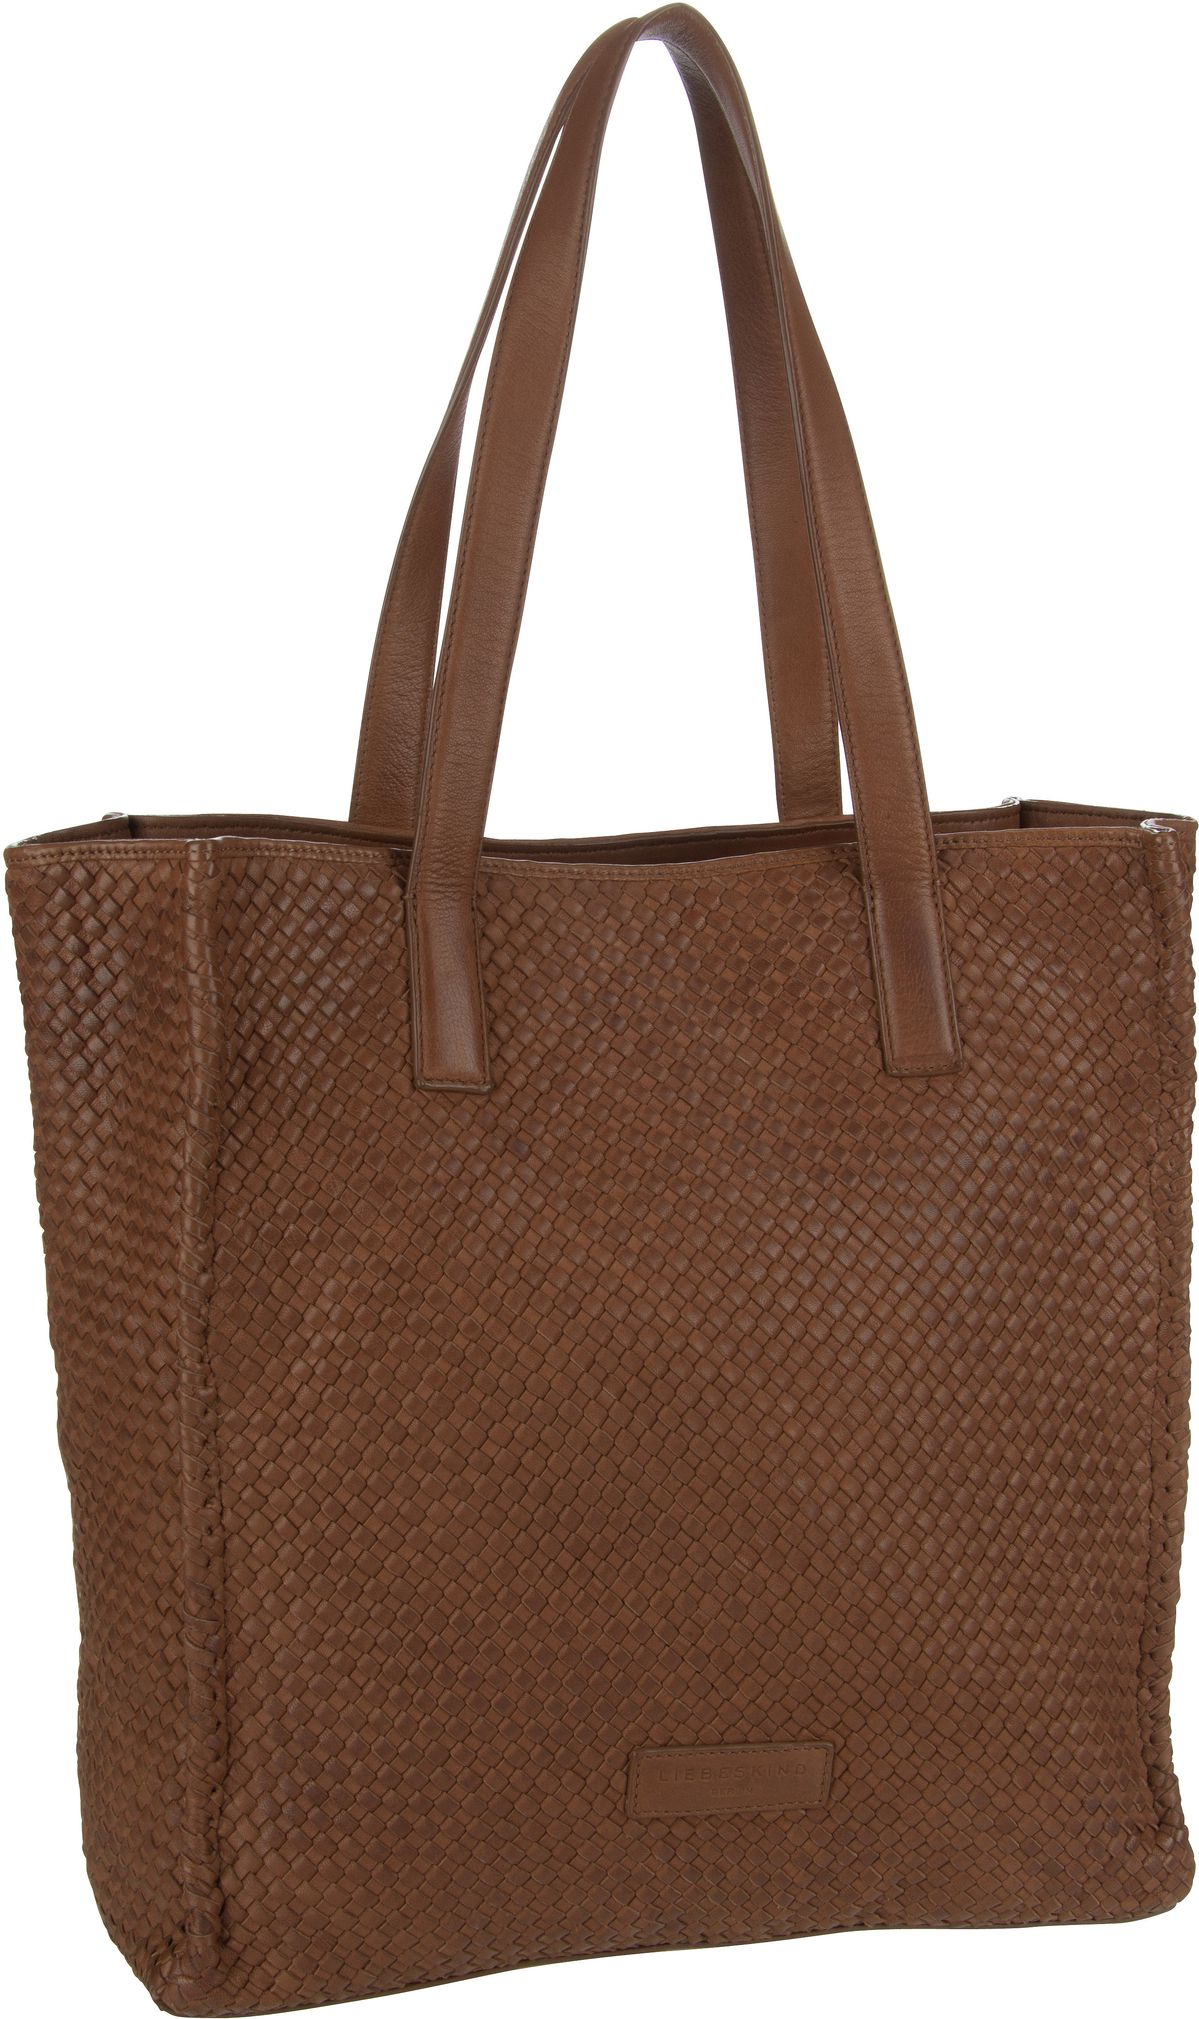 Berlin Handtasche Santa Fe Shopper XL Medium Brown